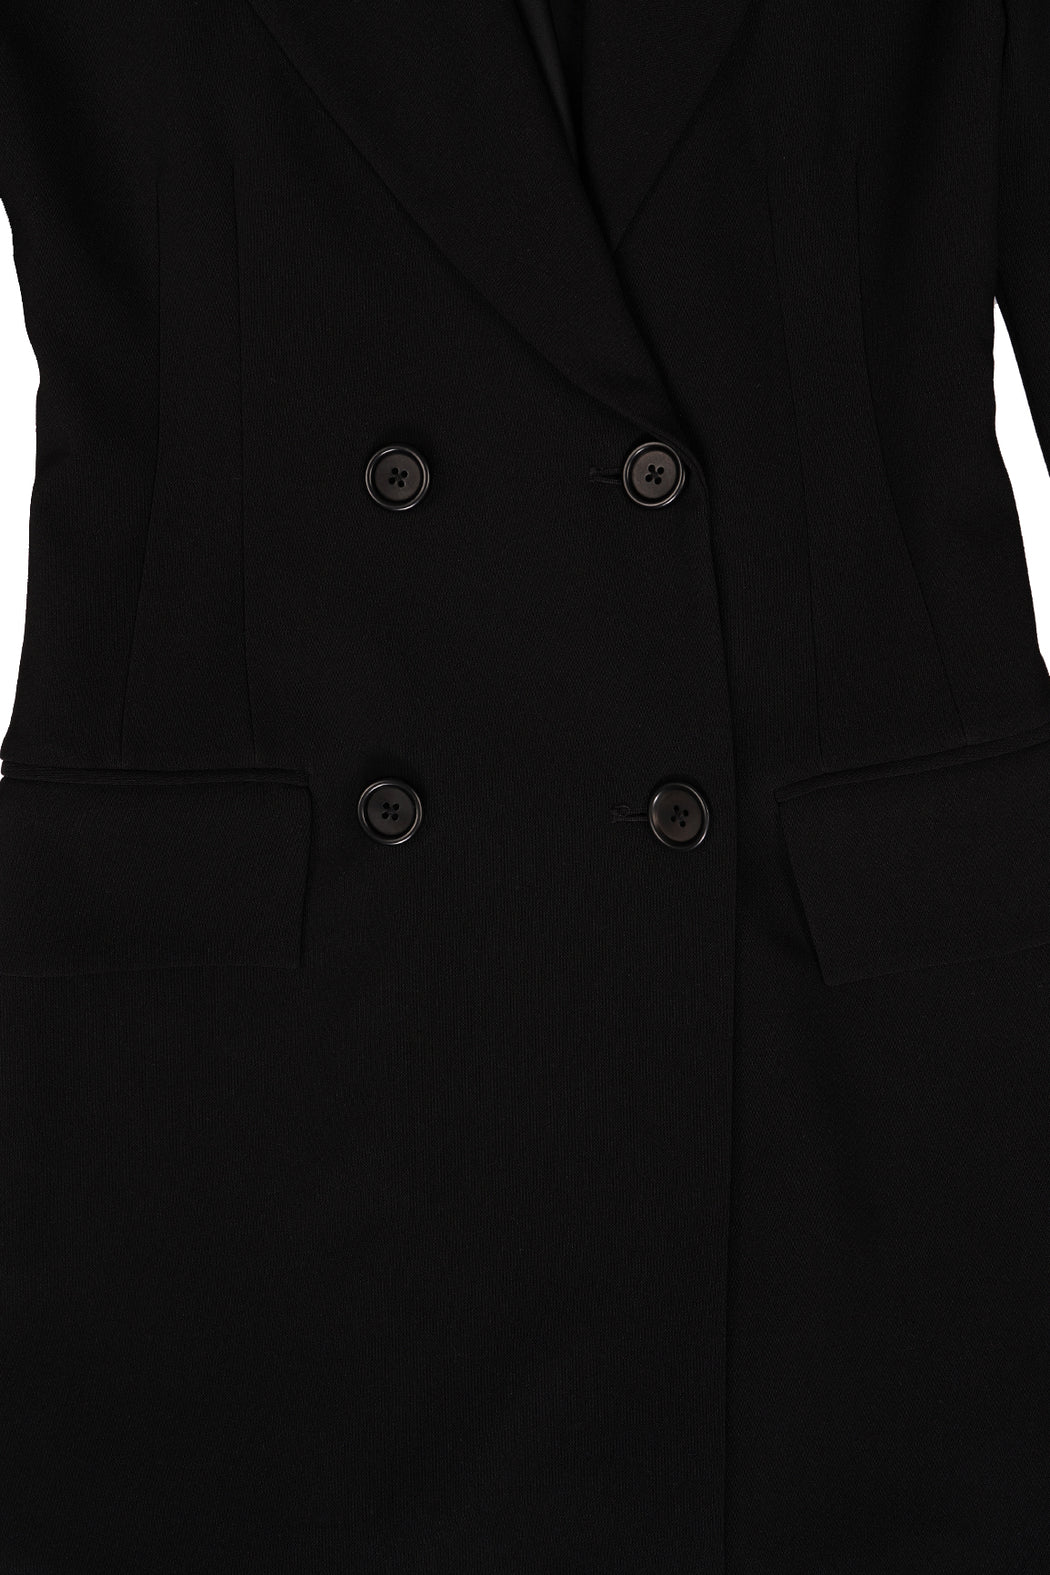 Blazer Dress - Black